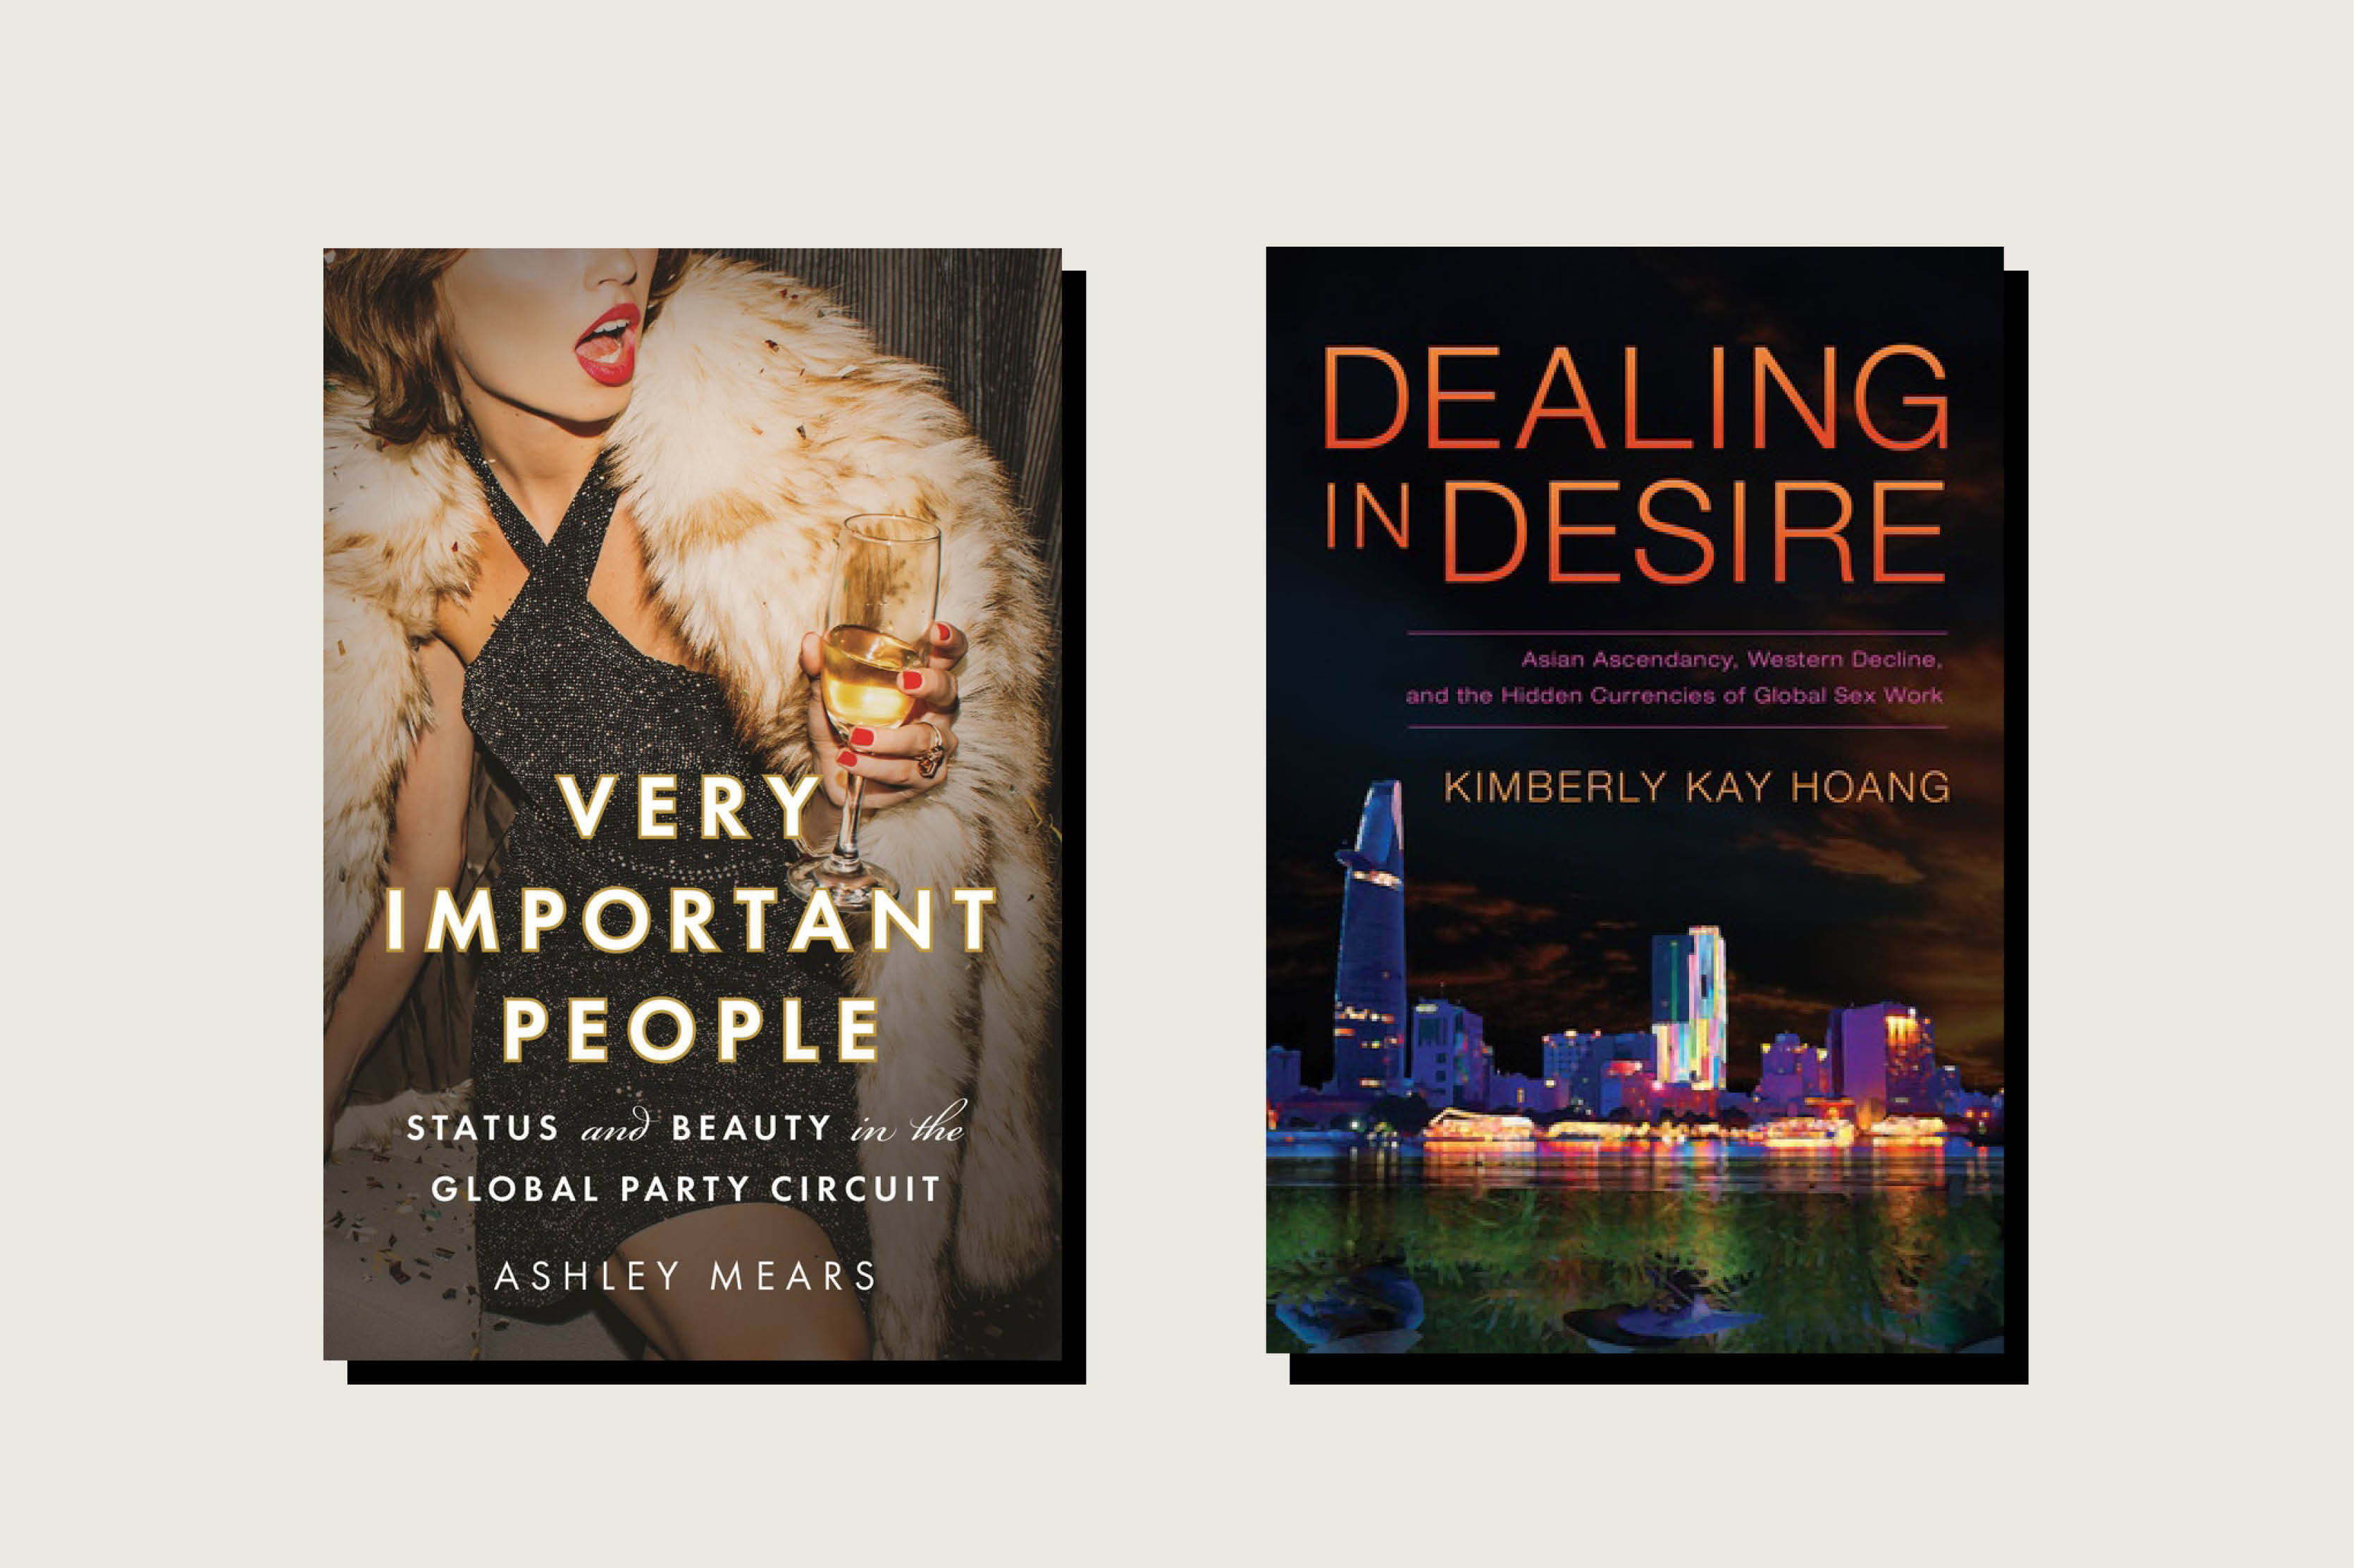 Very Important People: Status and Beauty in the Global Party Circuit, by Ashley Mears (May 2020)Dealing in Desire: Asian Ascendancy, Western Decline, and the Hidden Currencies of Global Sex Work, by Kimberly Kay Hoang (2015)